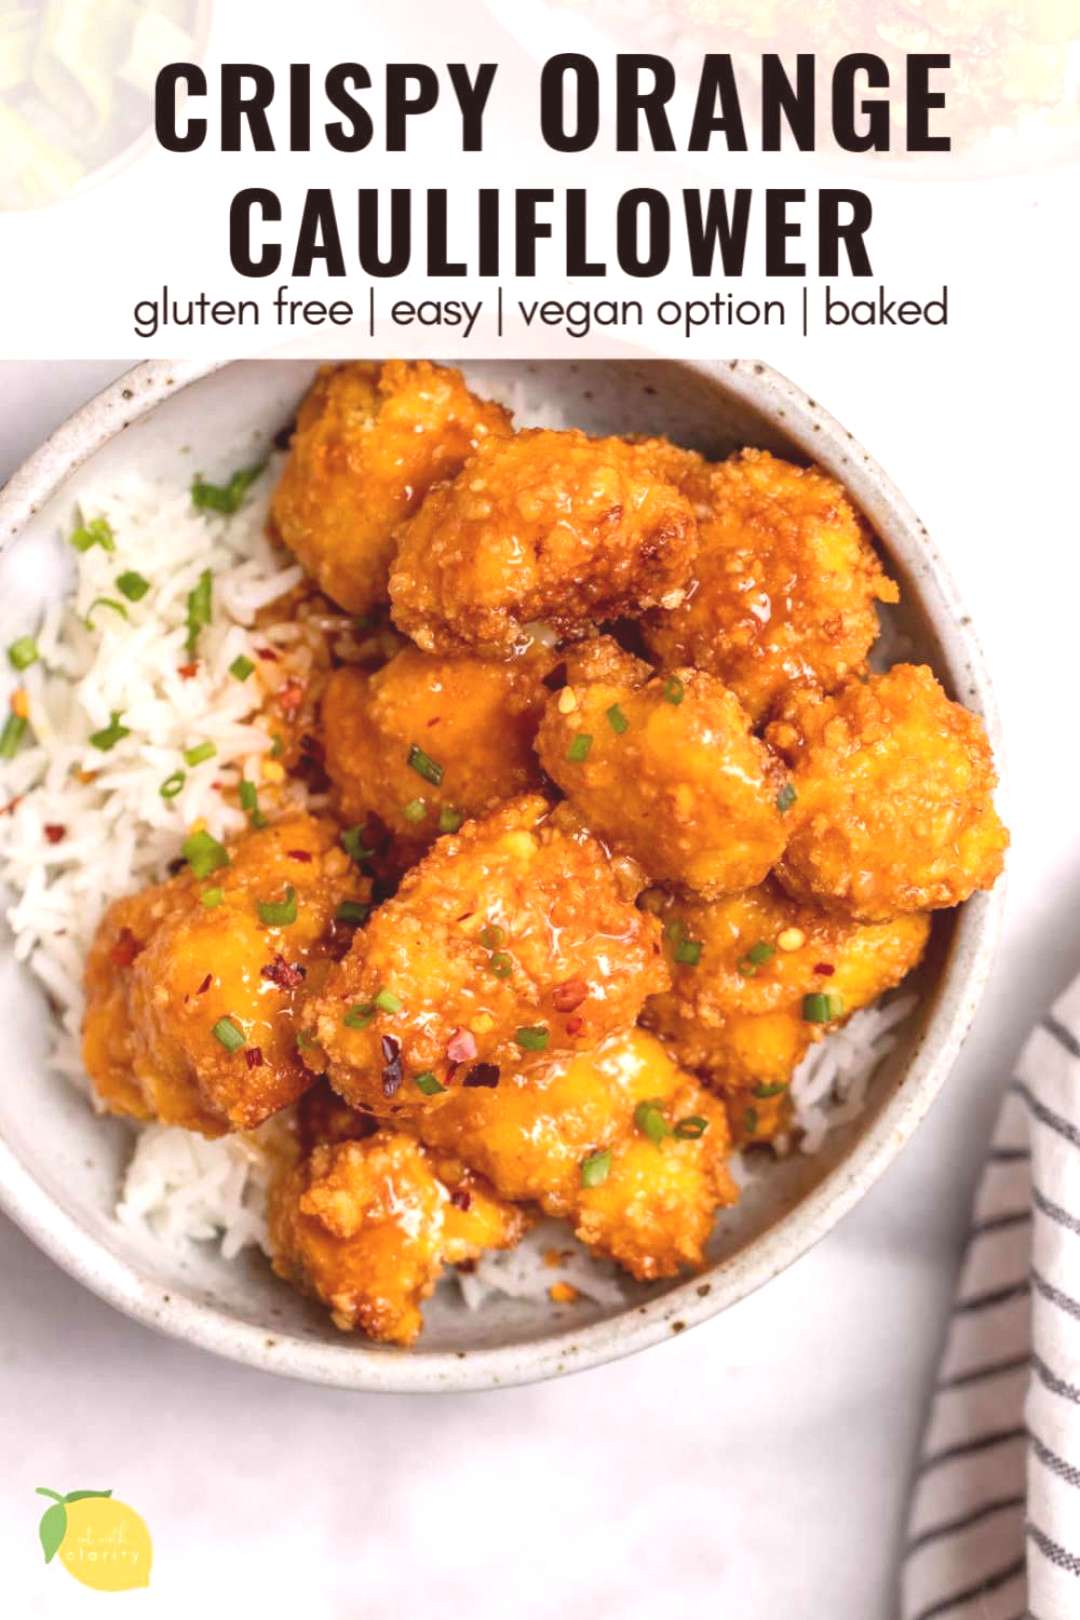 Craving Chinese food? This crispy orange cauliflower recipe is for you! its gluten free, baked, ea